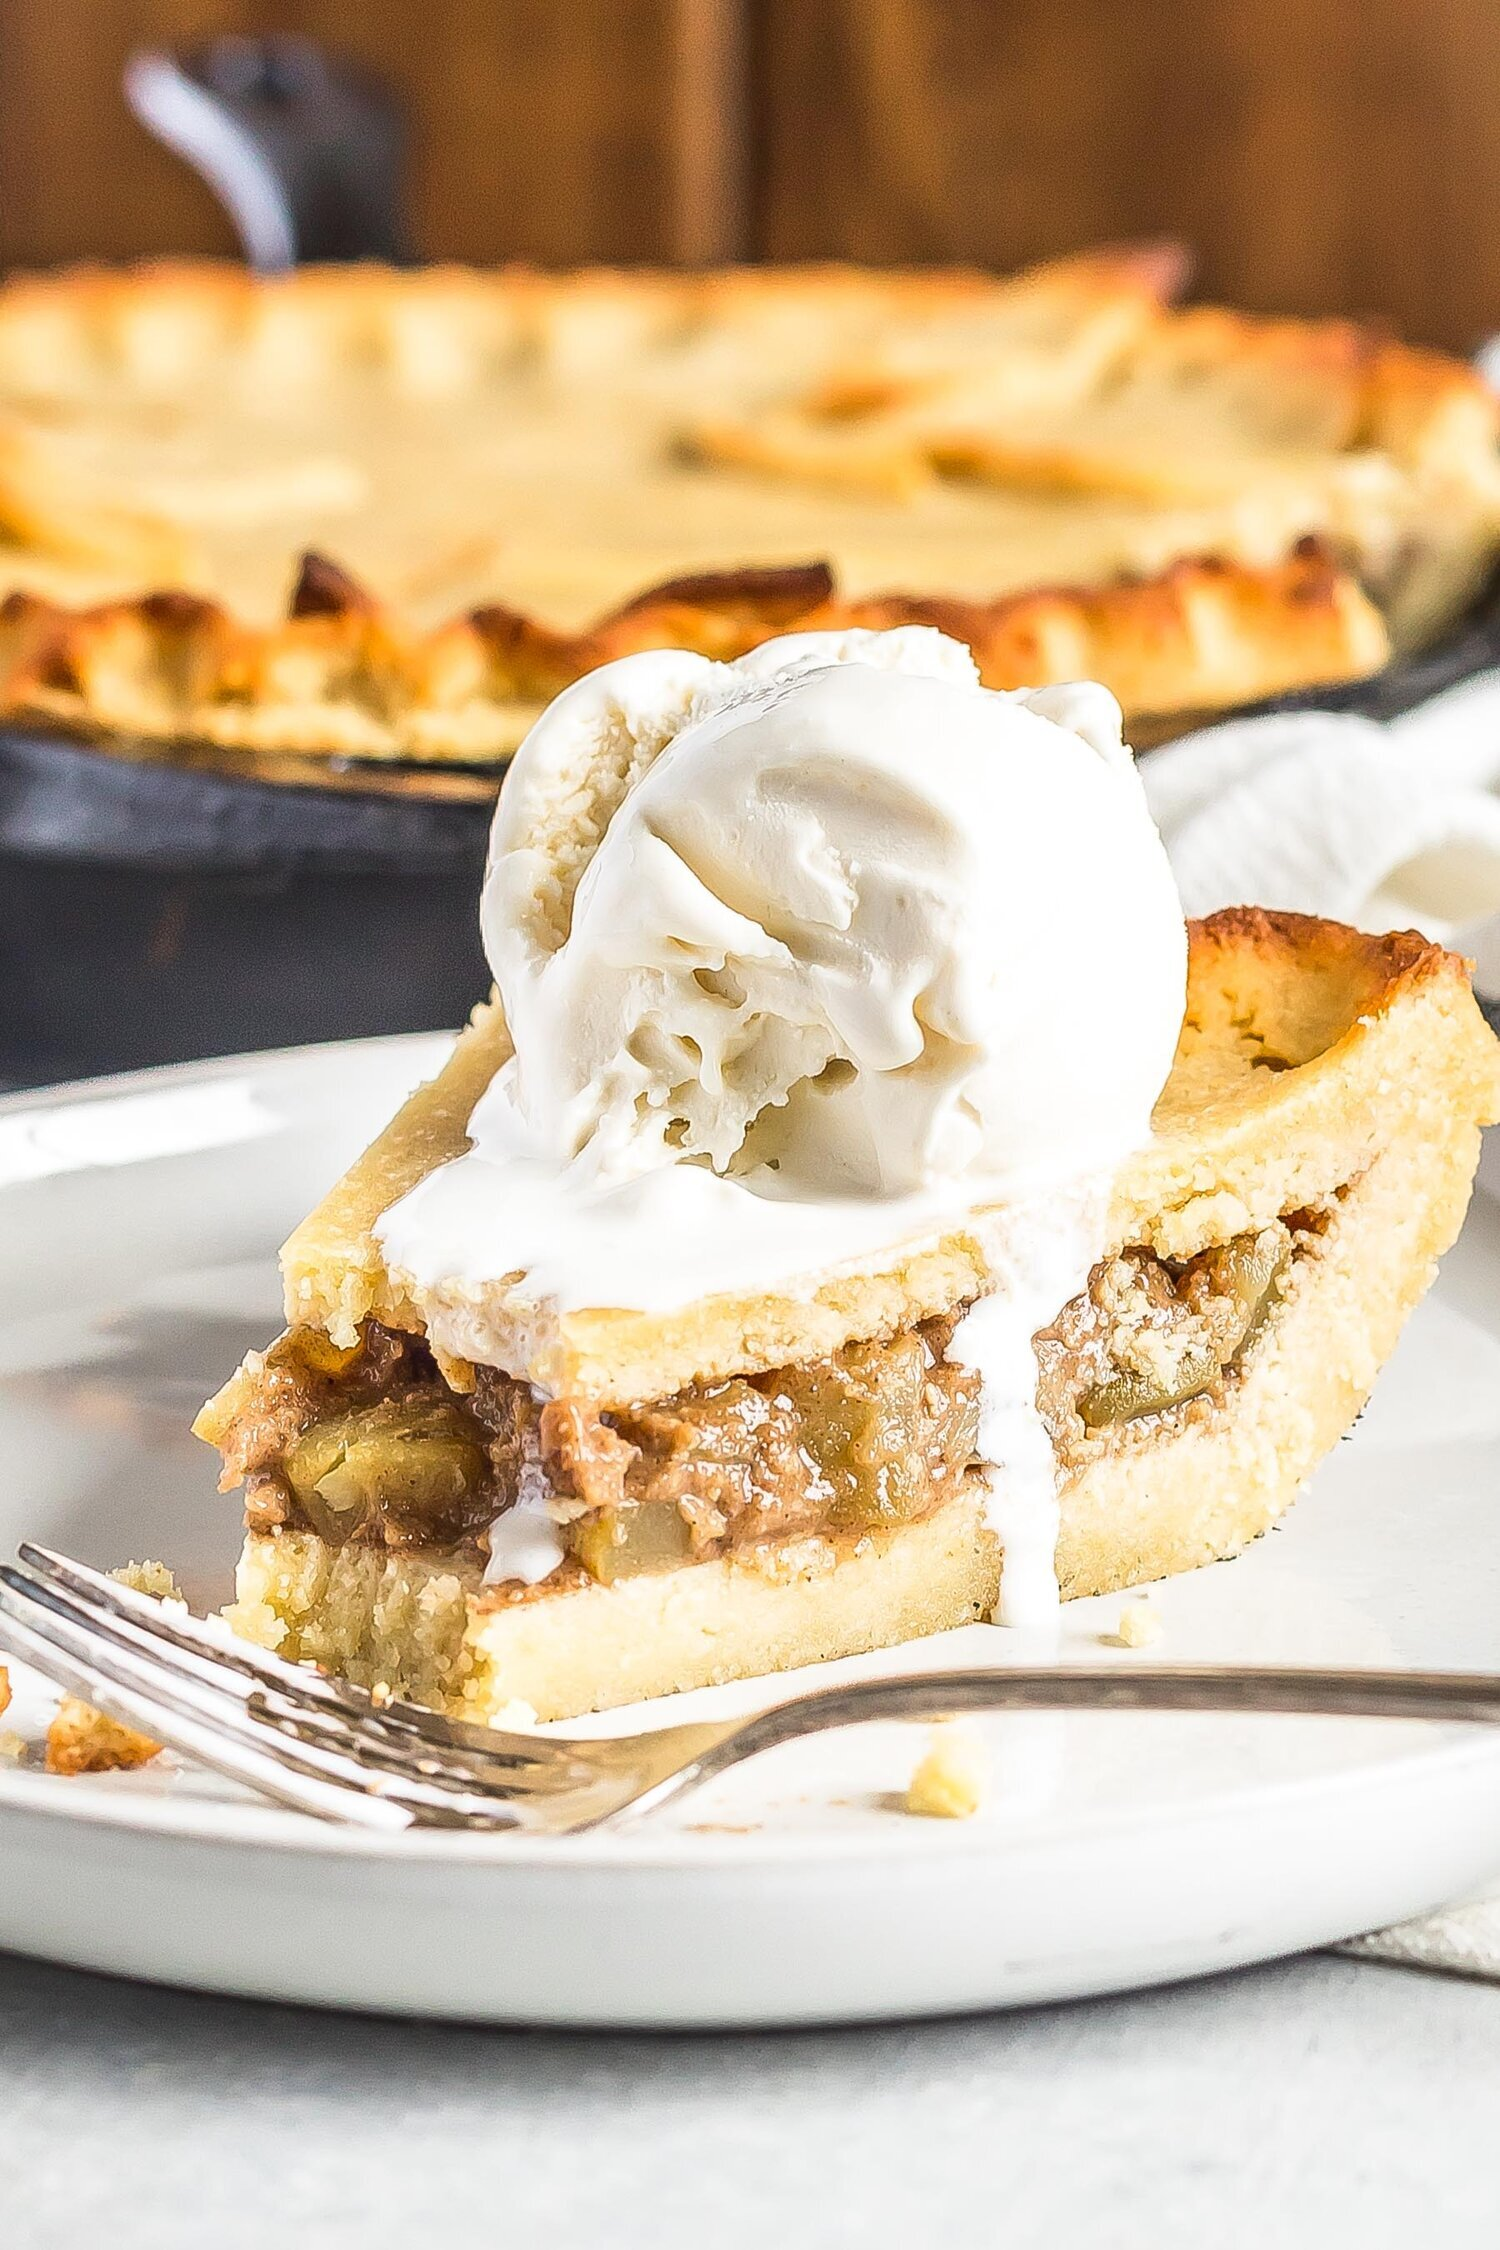 A slice of Keto Apple Pie with Ice cream on top served on a plate. Skillet in the background